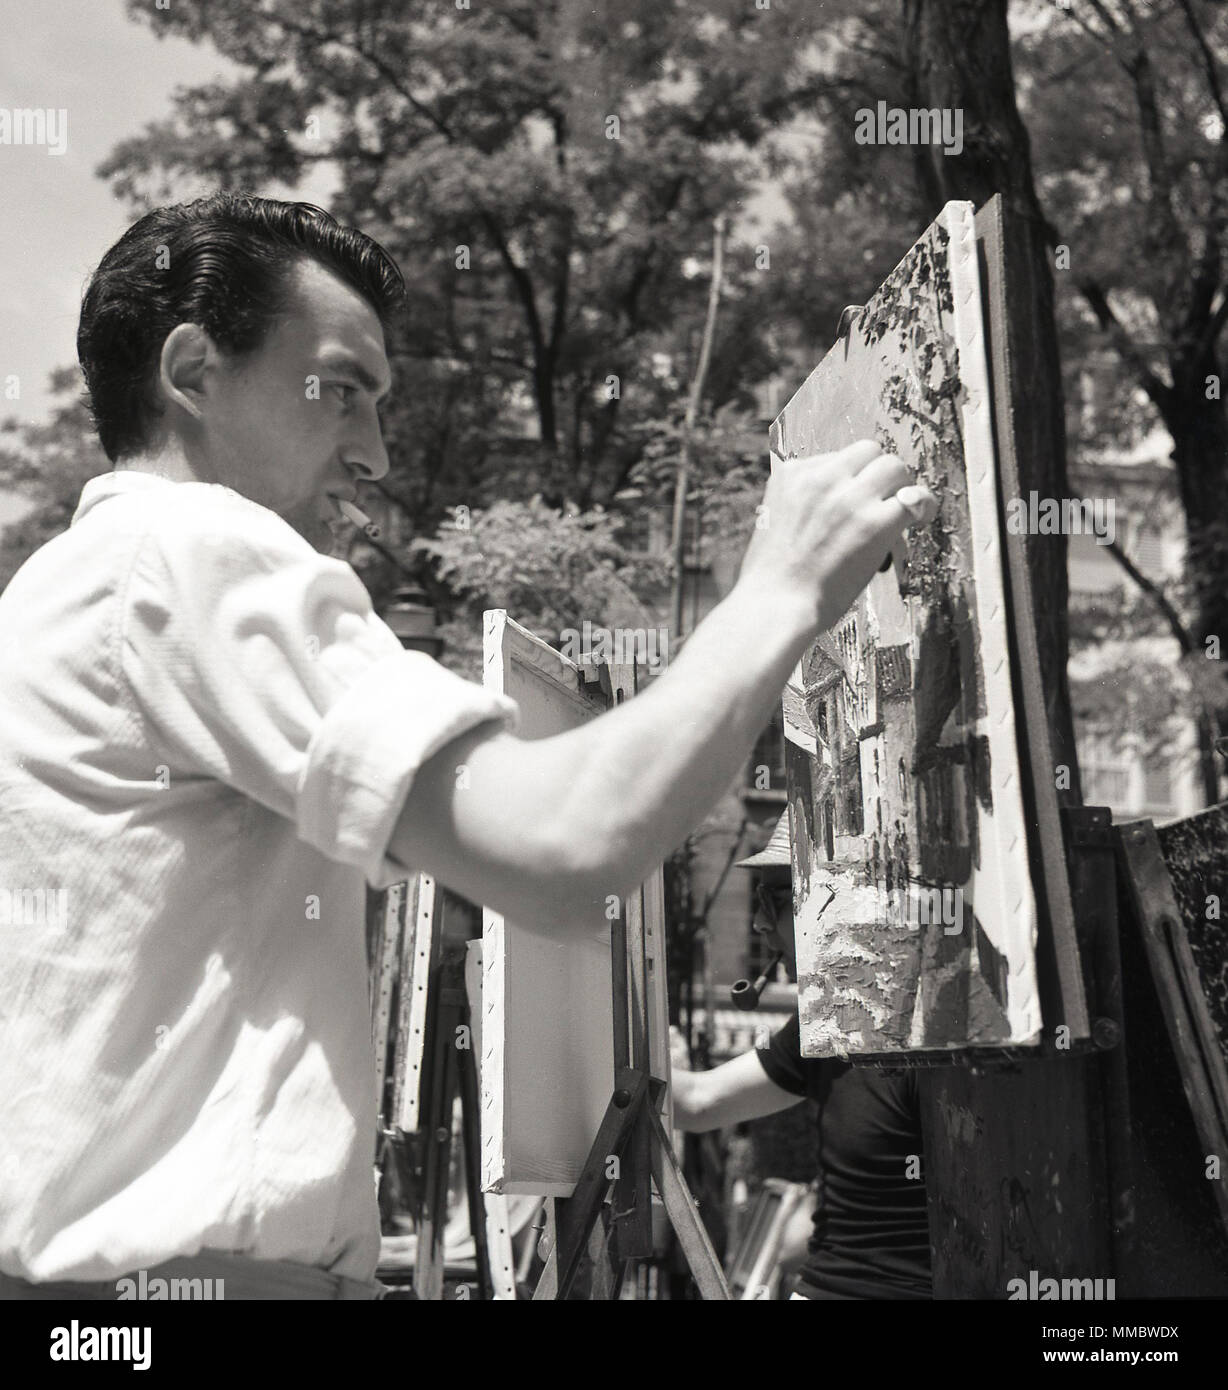 1950s, historical picture, a male street artist painting on a canvas outside, at the Place du Tertre, a square at Montmartre in Paris, France, famous for its artists and artistic history. - Stock Image